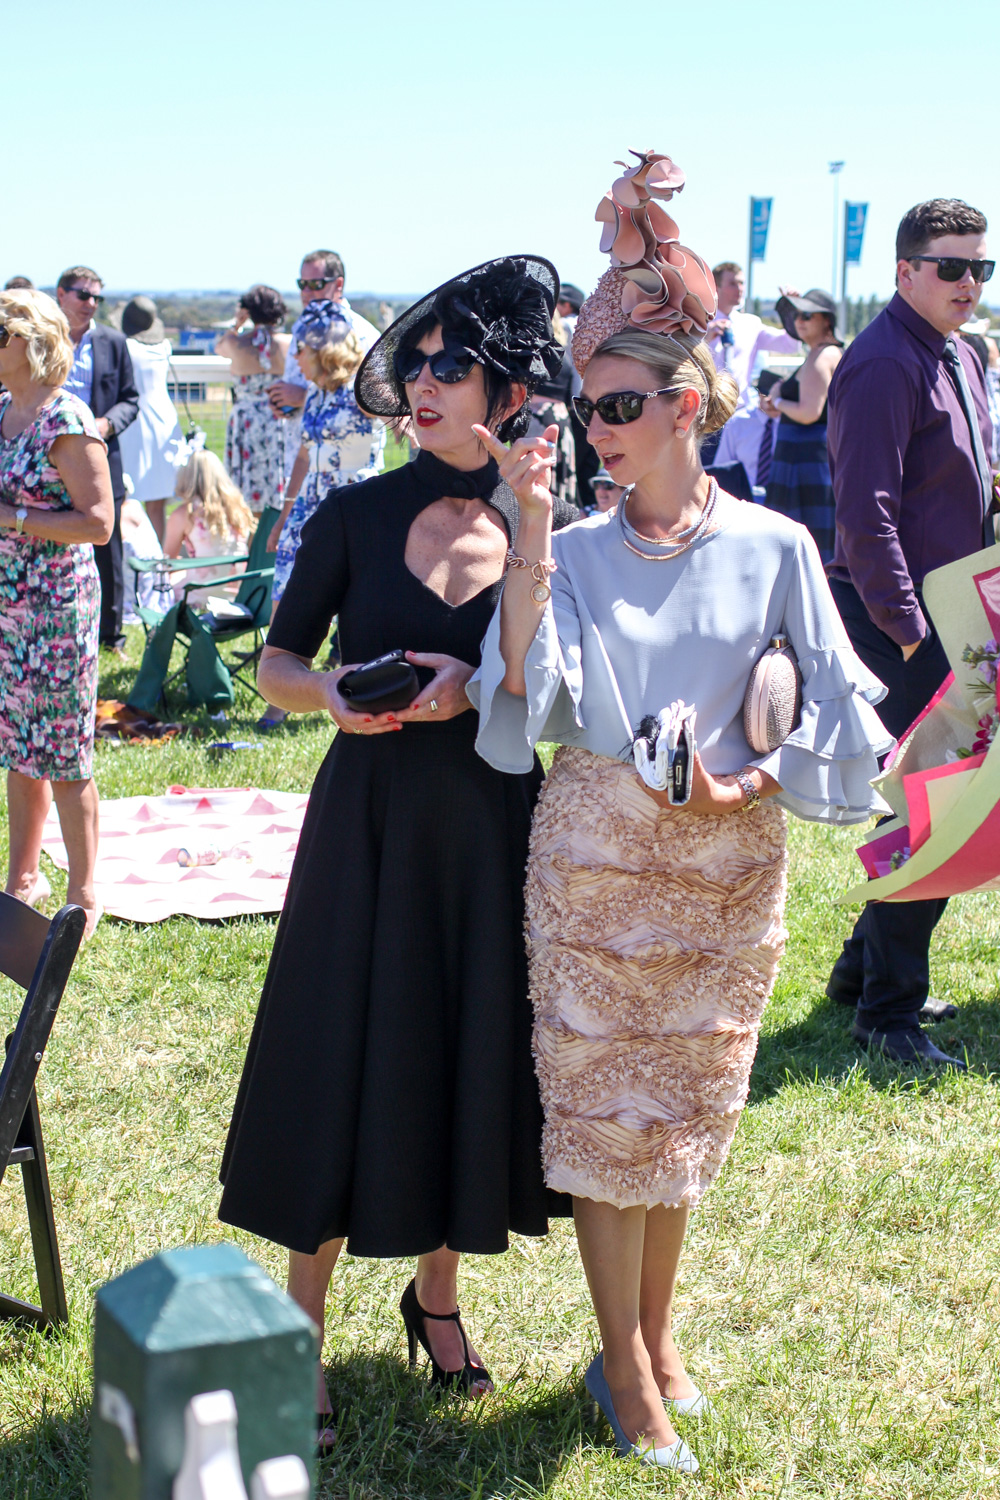 Clare Schreenan from Clasch Design with Millinery Winner Lisa